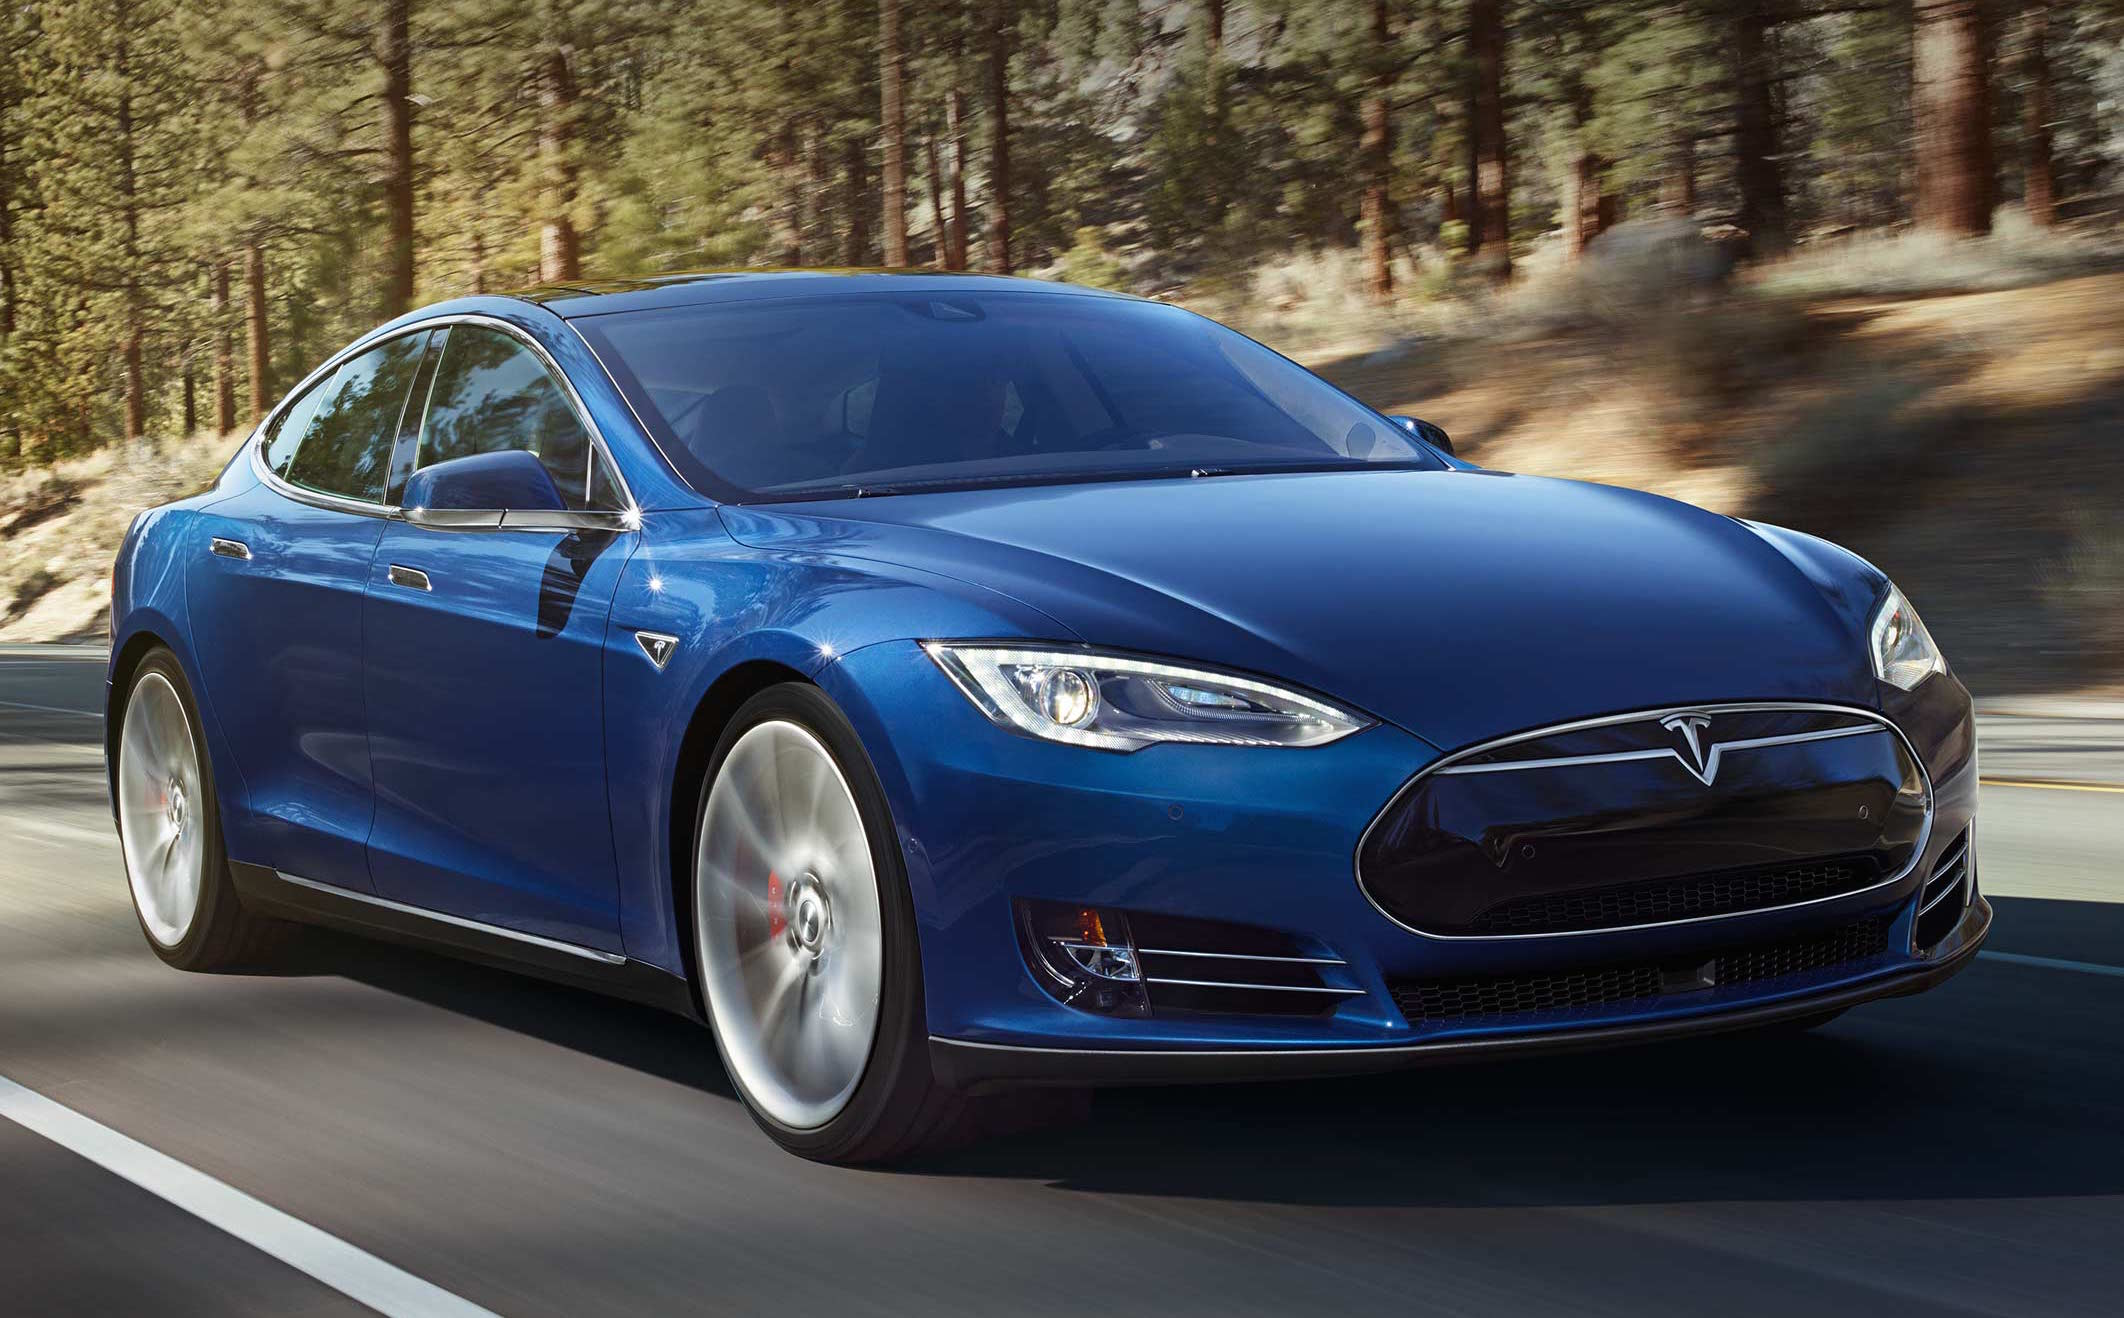 Tesla Model S 70d New Entry Level With Awd 329 Hp Image